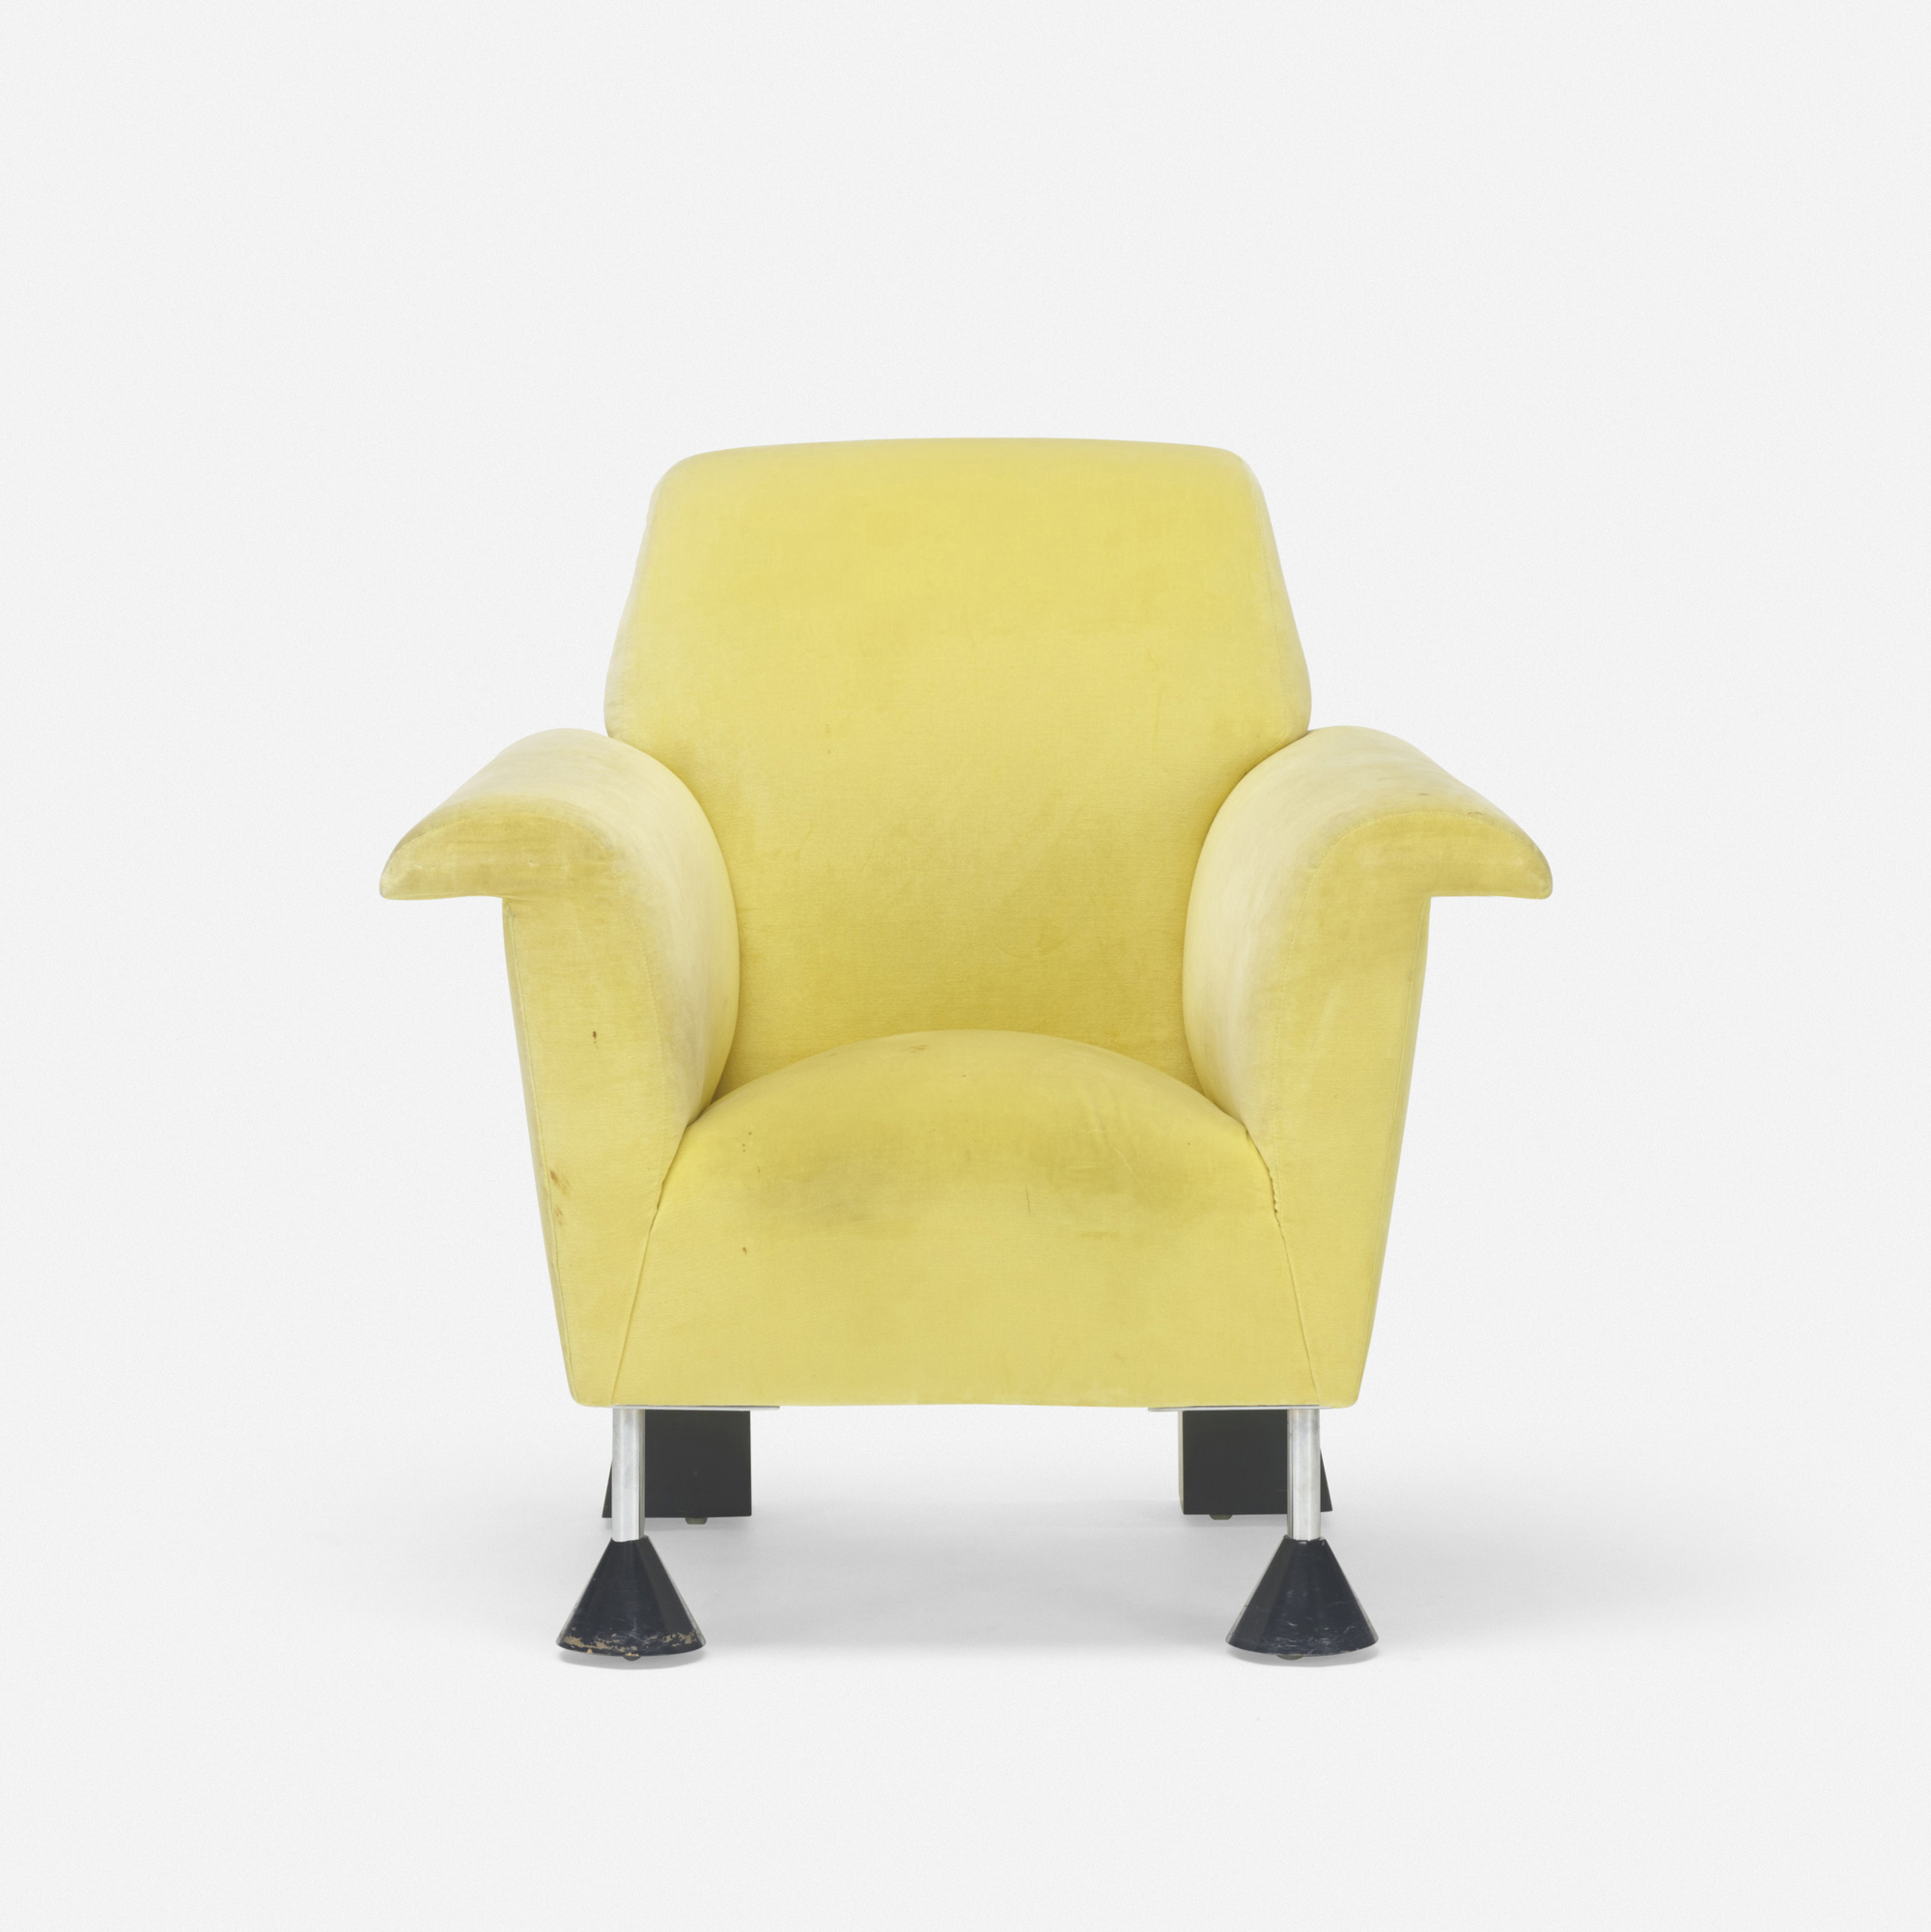 424: Peter Shire / Wexler lounge chair (2 of 2)